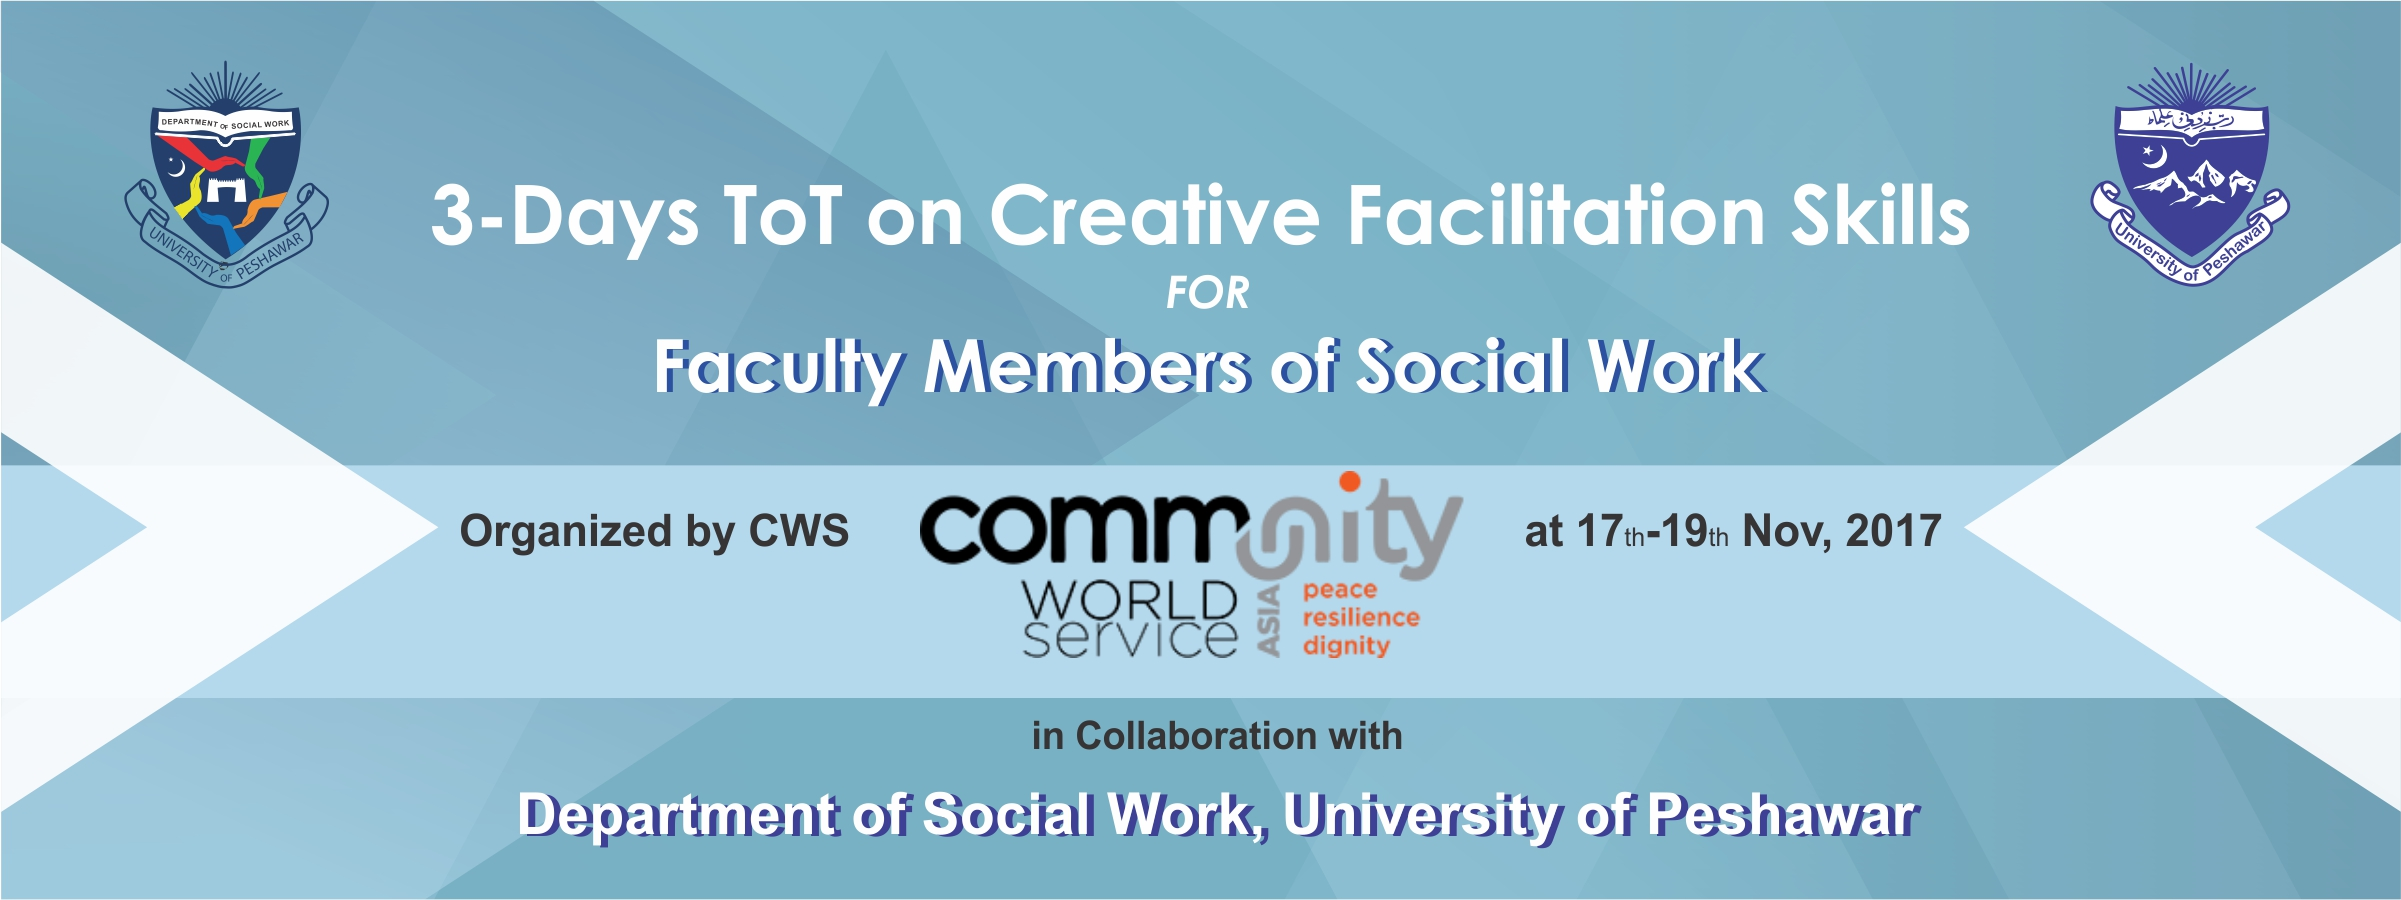 3-Day ToT on Creative Facilitation Skills